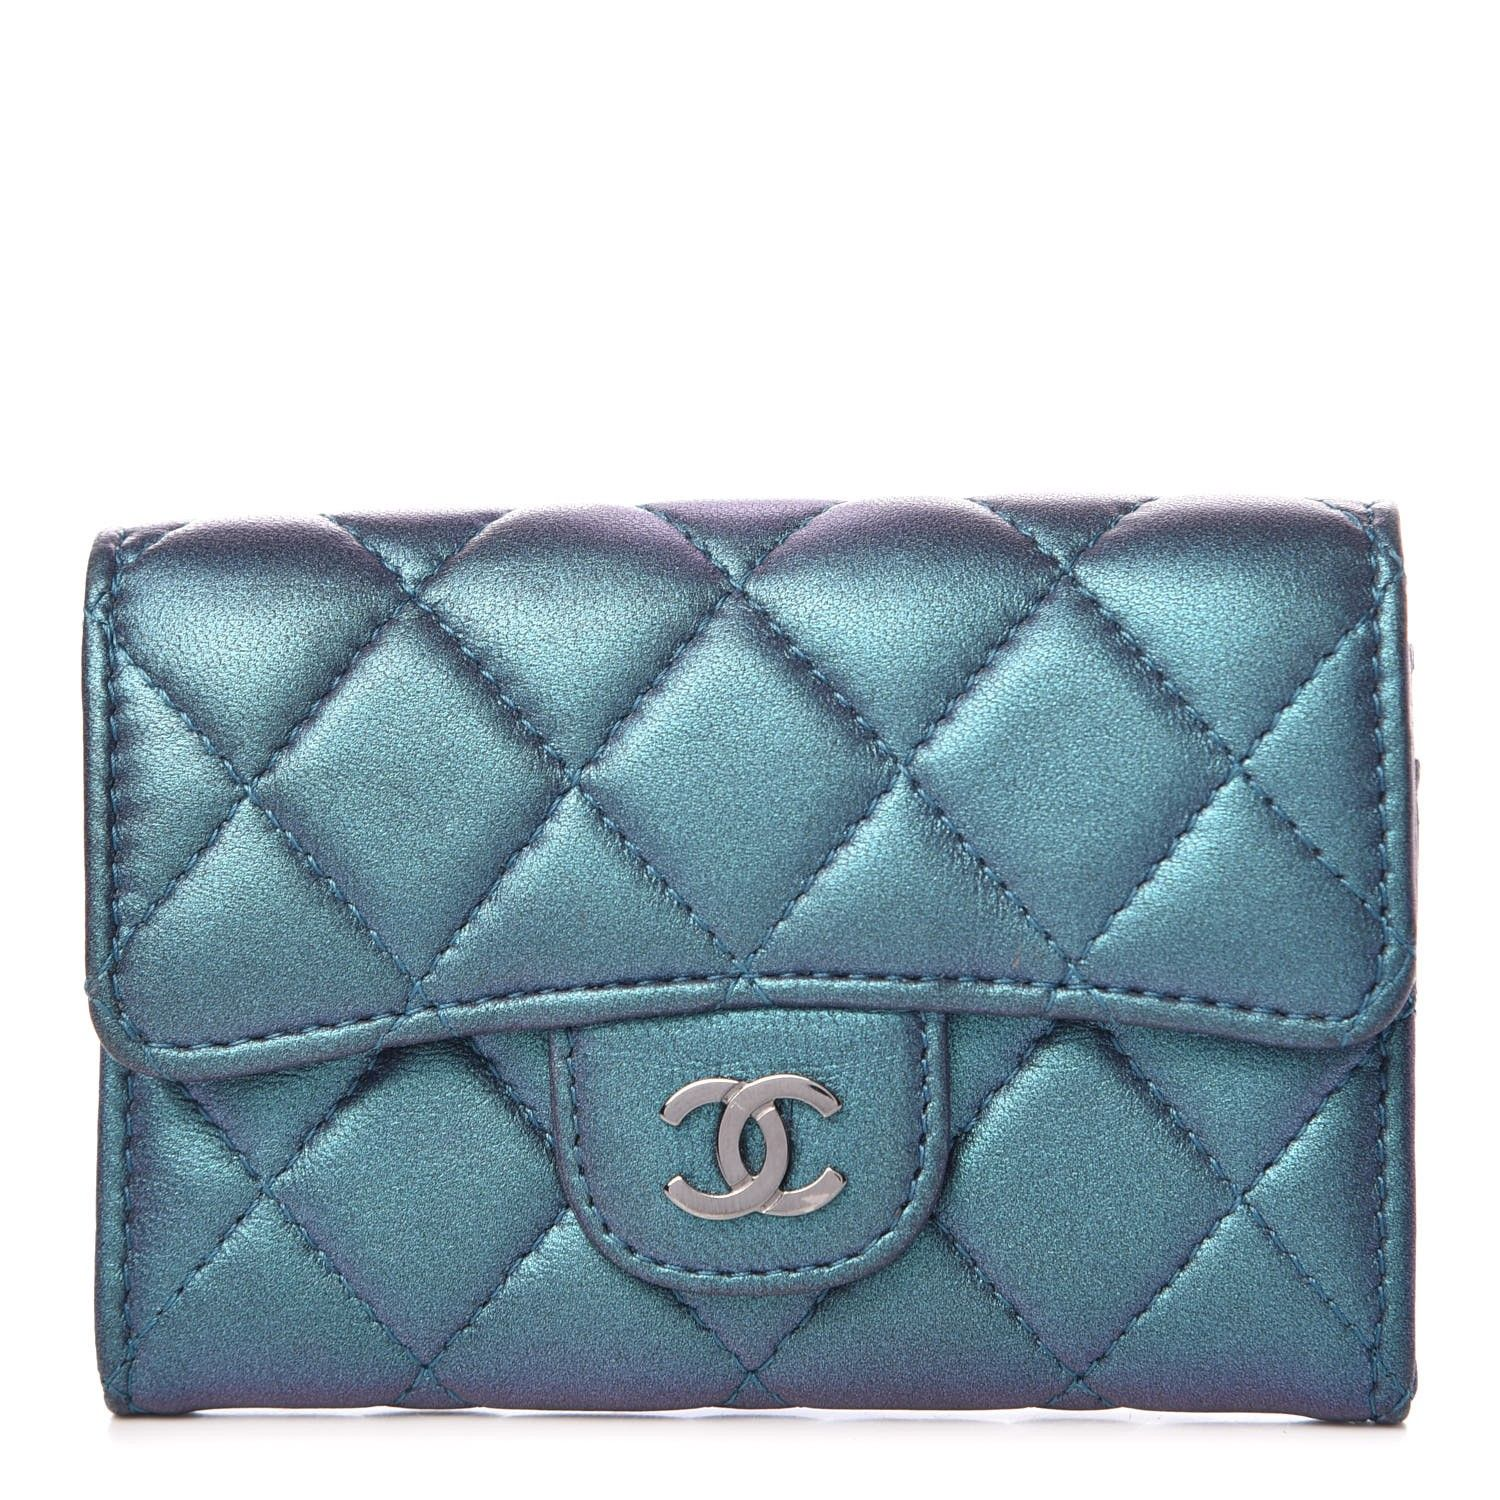 CHANEL Iridescent Lambskin Quilted Card Holder Blue